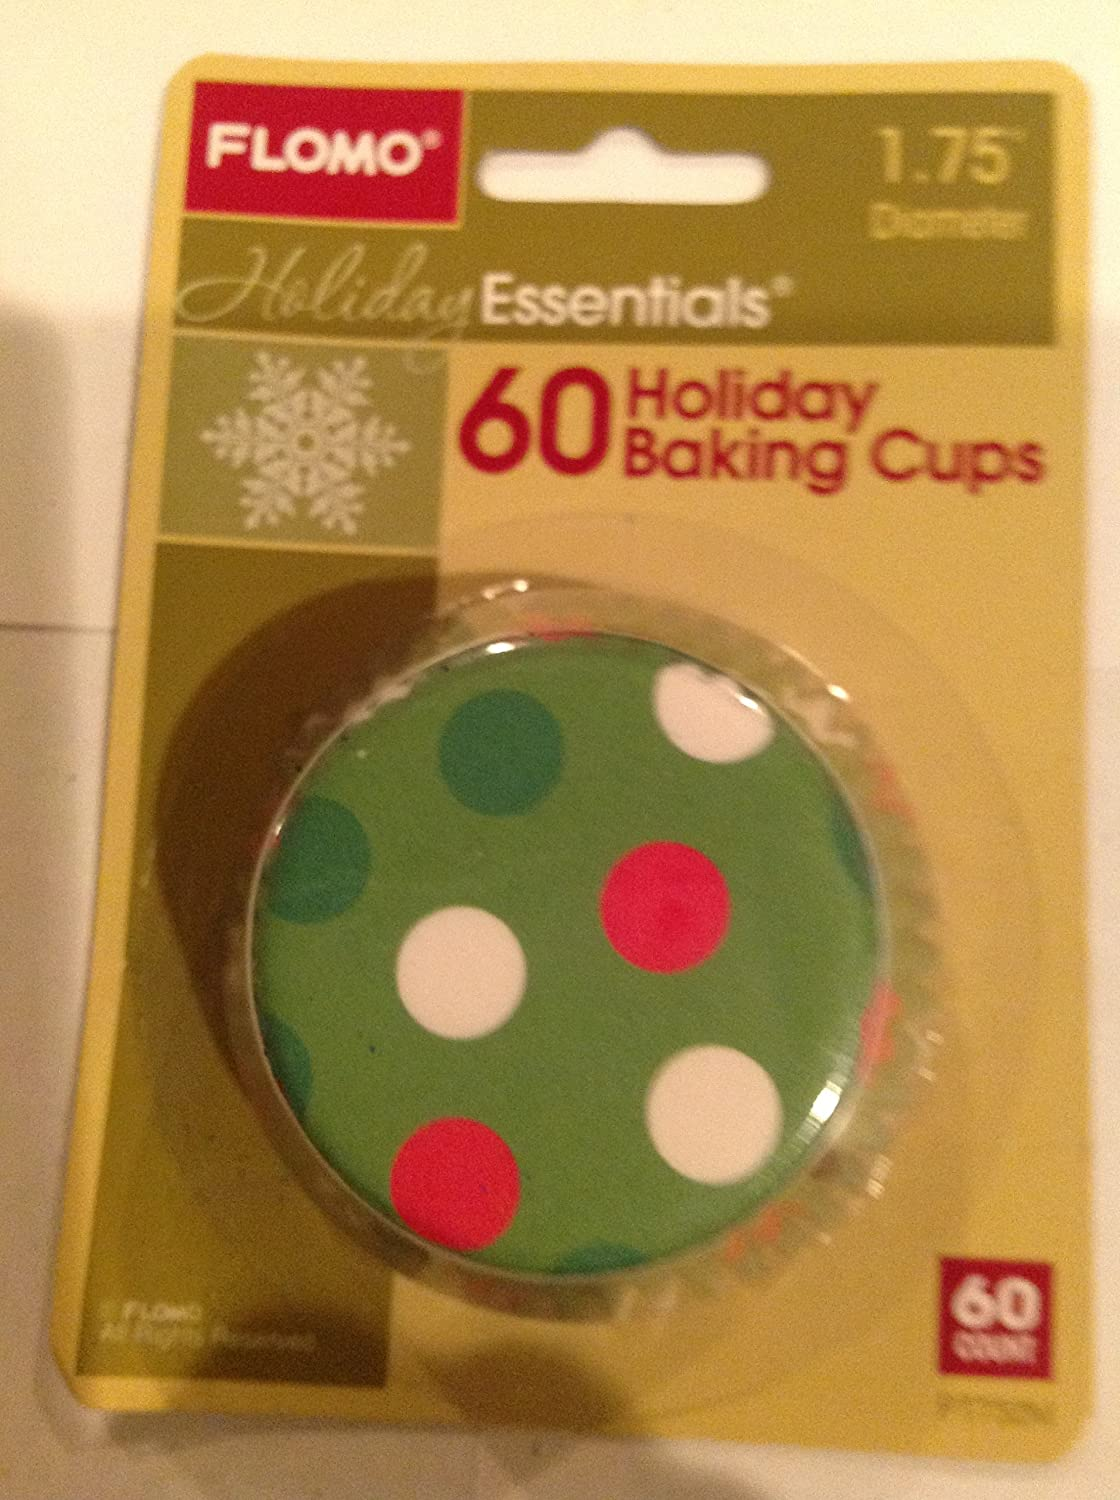 Holiday Baking Cups Beauty products ct. 60 Translated